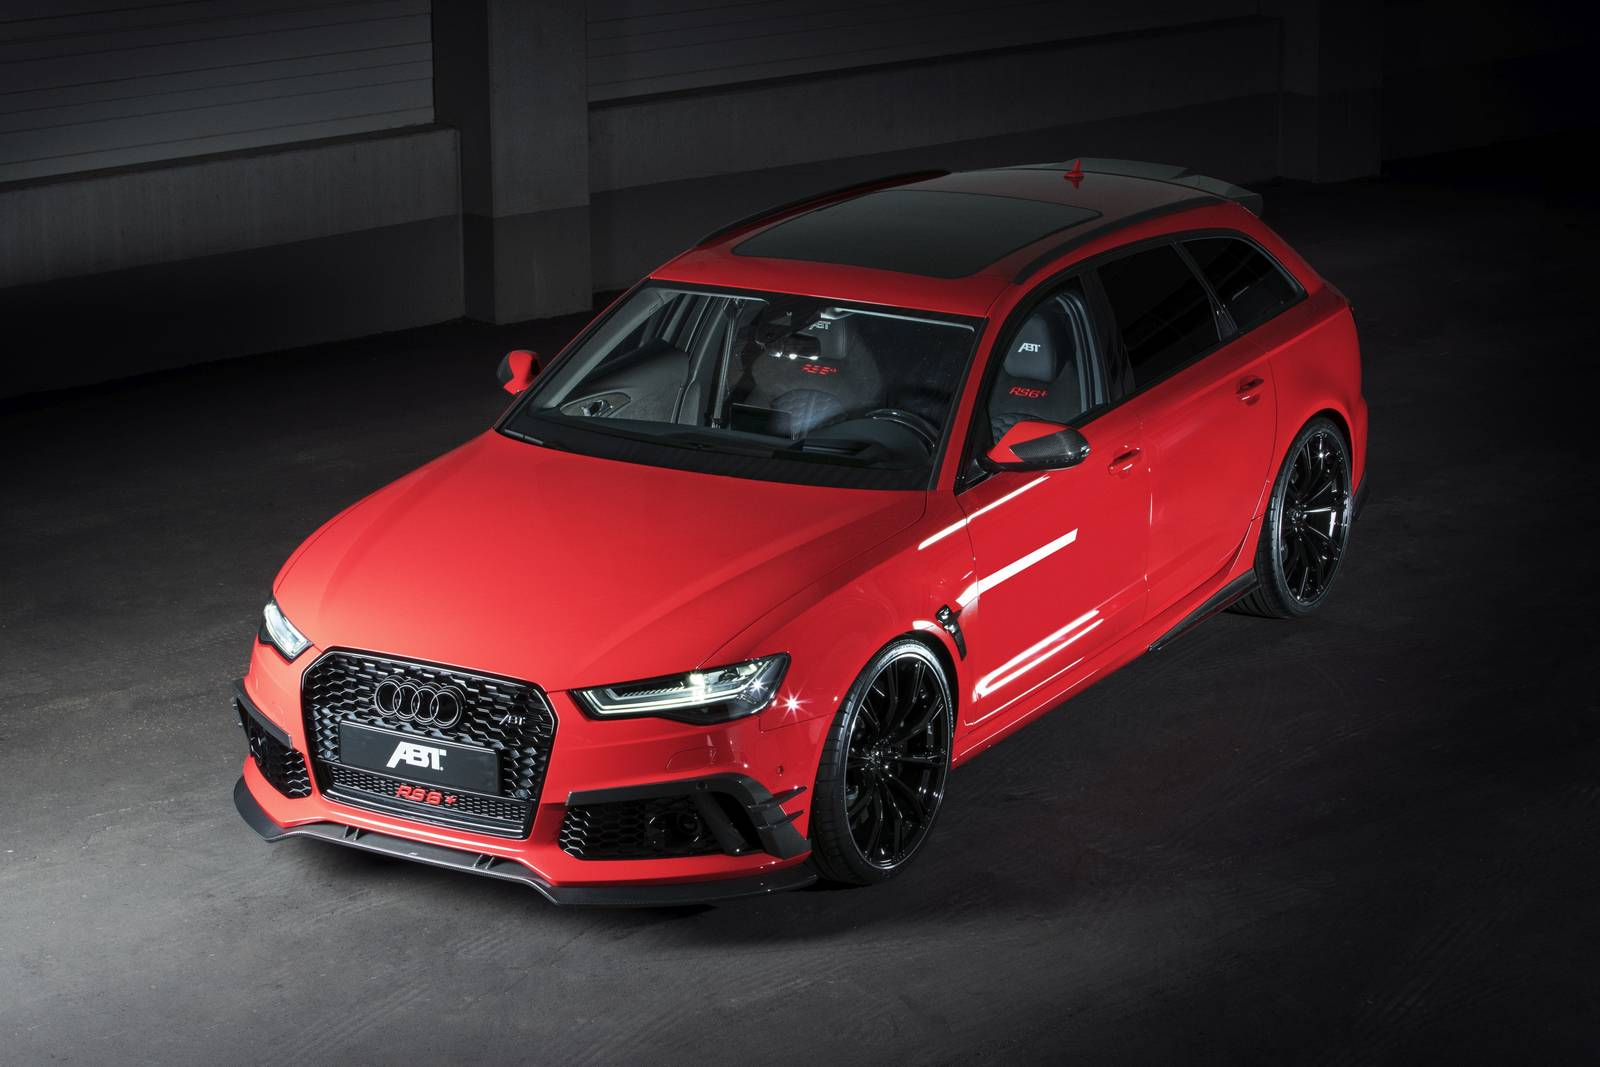 official abt audi rs6 with 705hp gtspirit. Black Bedroom Furniture Sets. Home Design Ideas